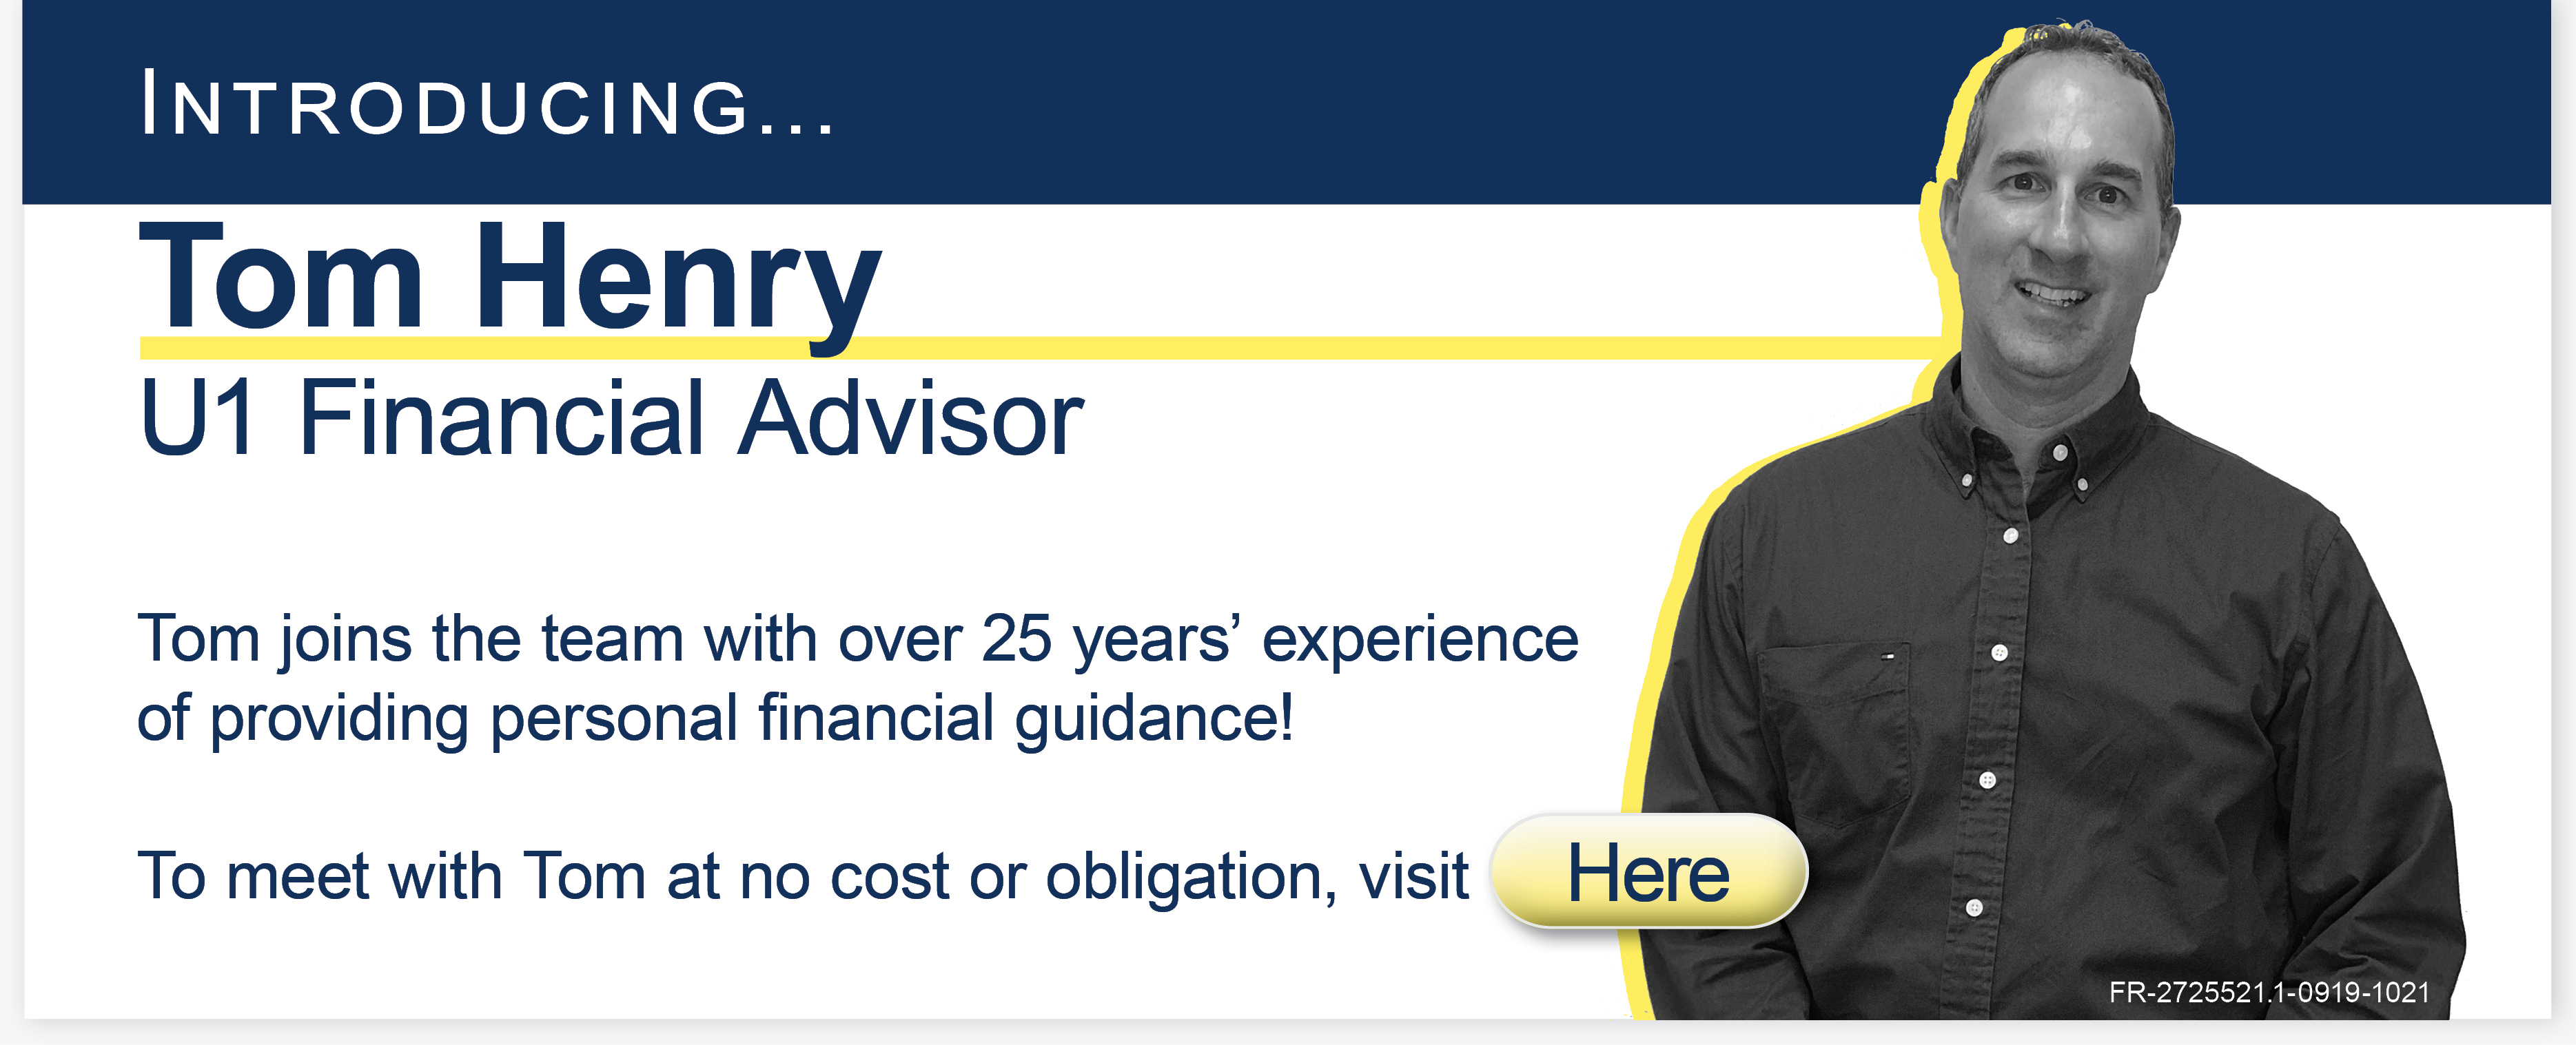 Universal 1 Financial Advisor Tom Henry